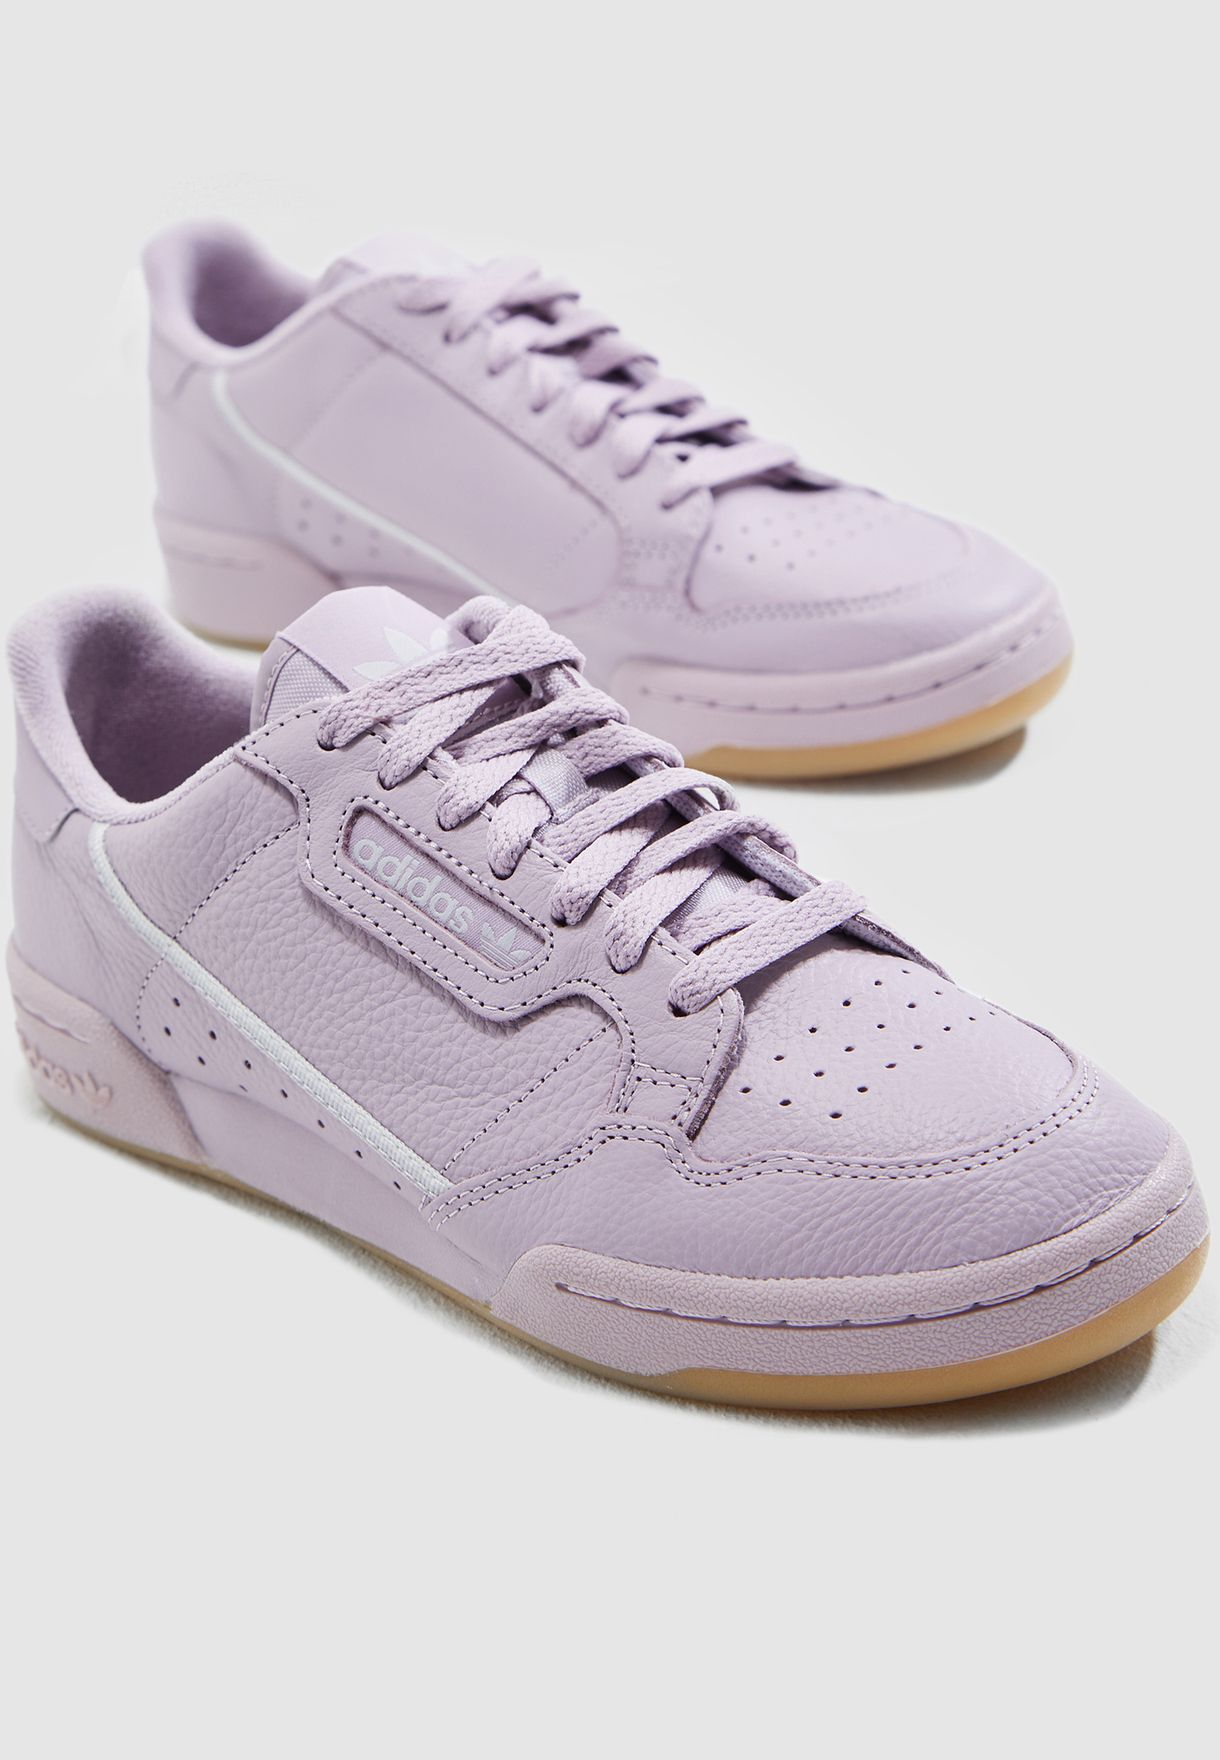 b006e9b6c Shop adidas Originals purple Continental 80 G27719 for Women in ...